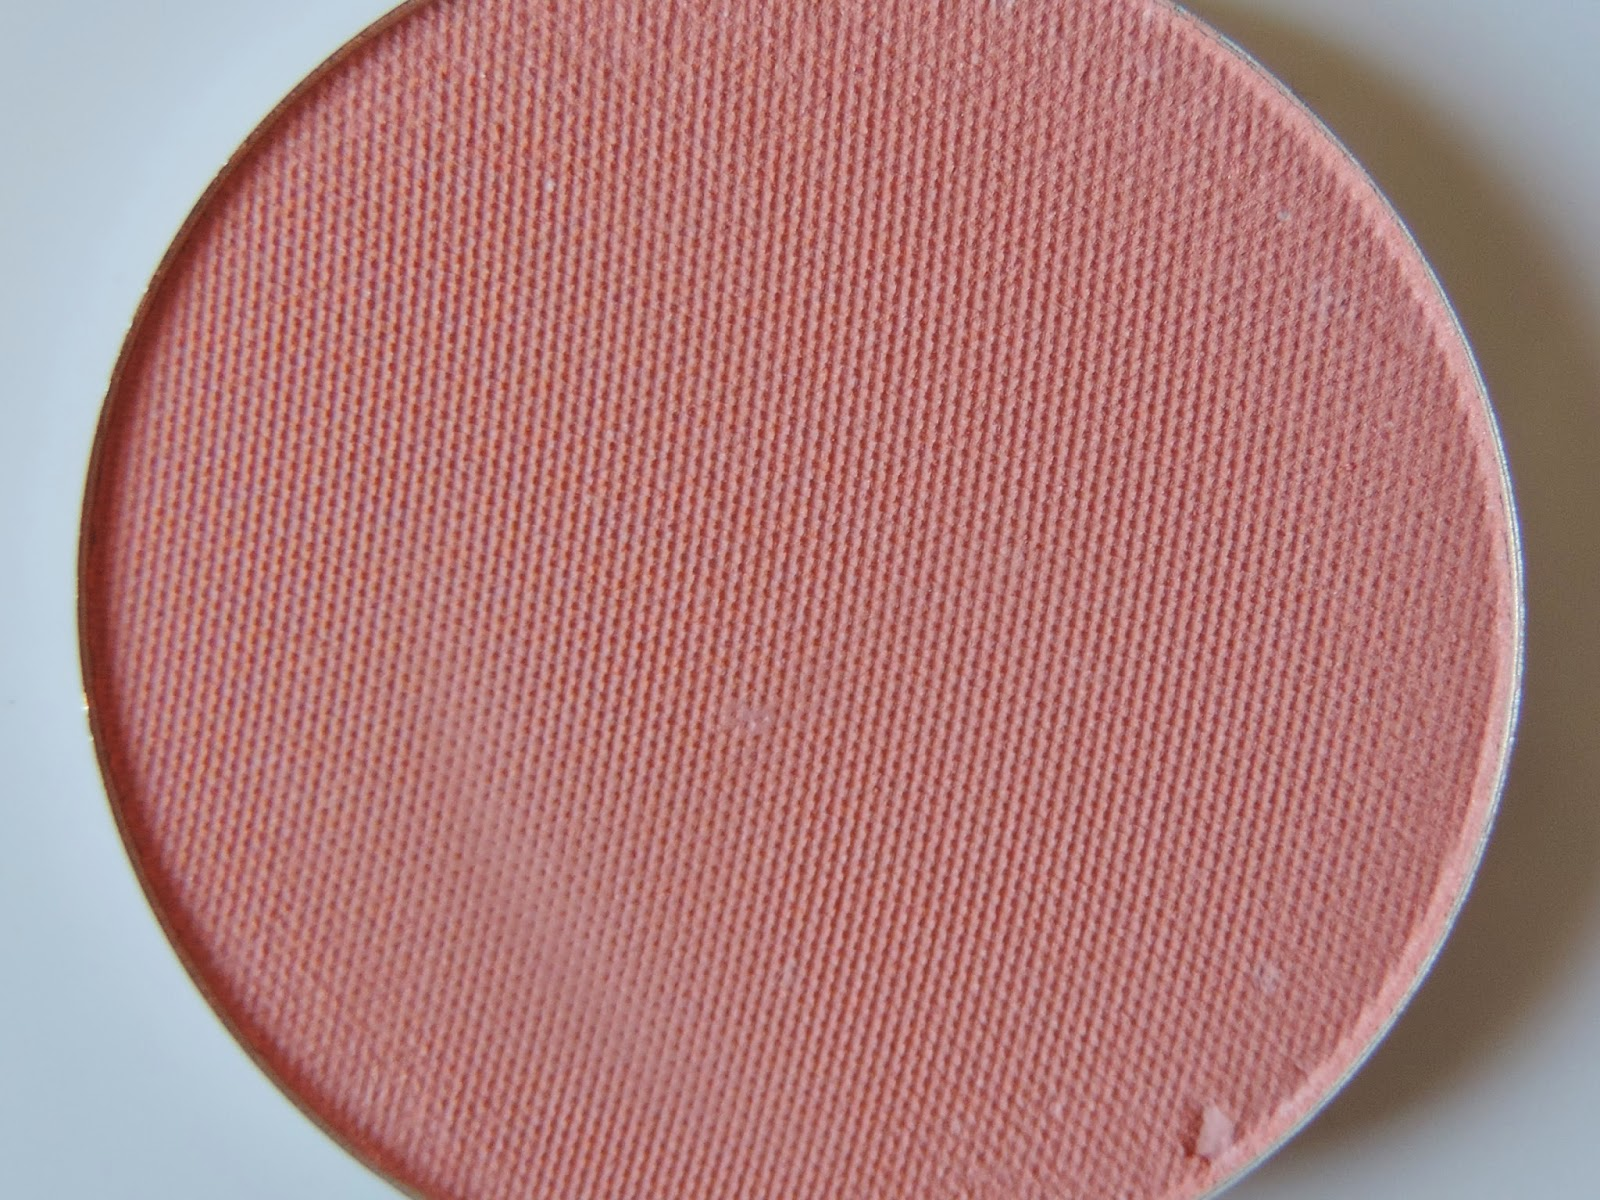 Makeup Geek blush in Bliss